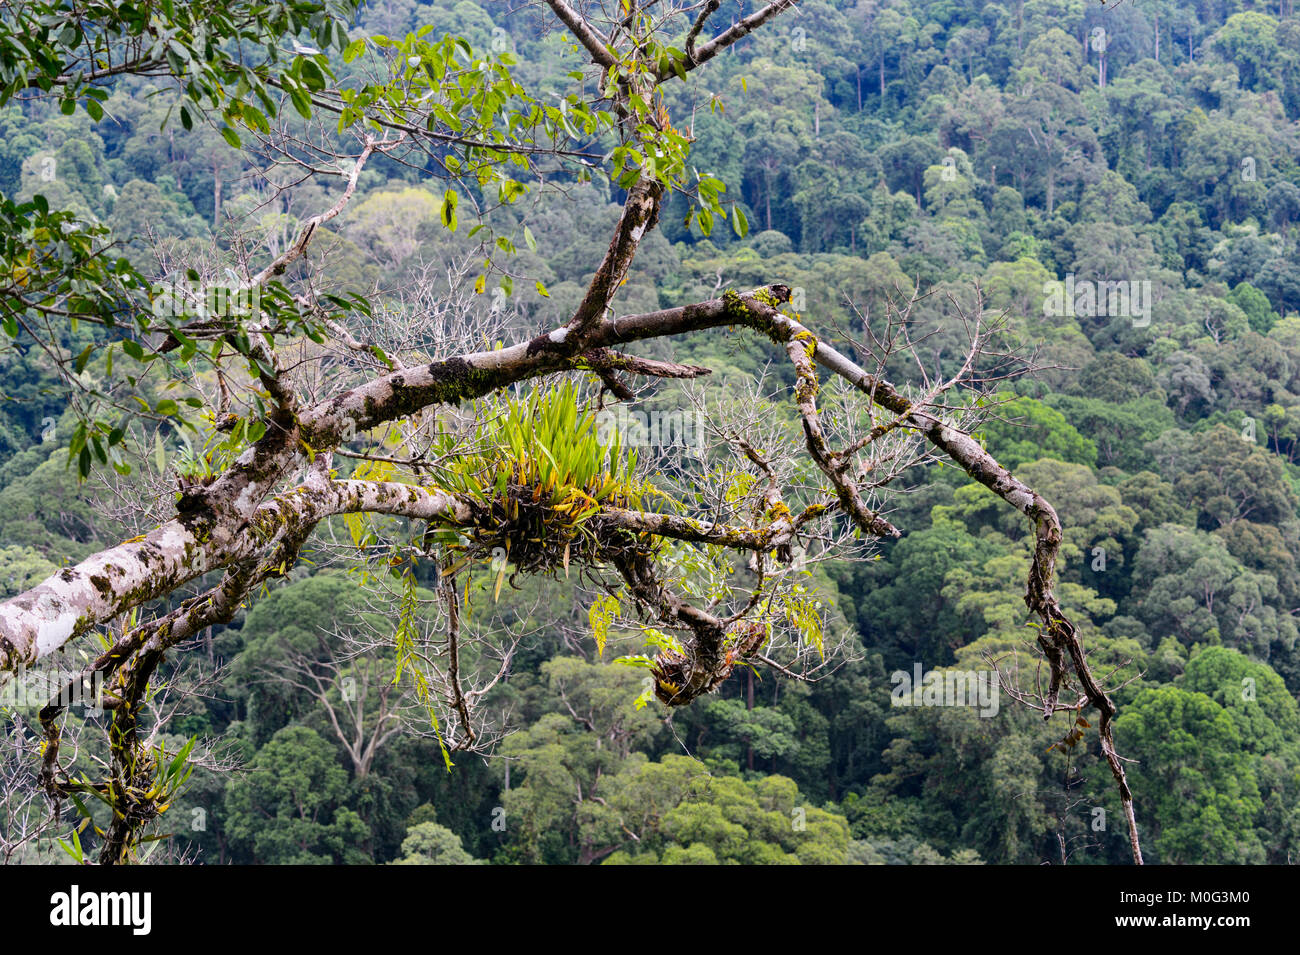 View over primary rainforest canopy, Danum Valley, Borneo, Sabah, Malaysia Stock Photo